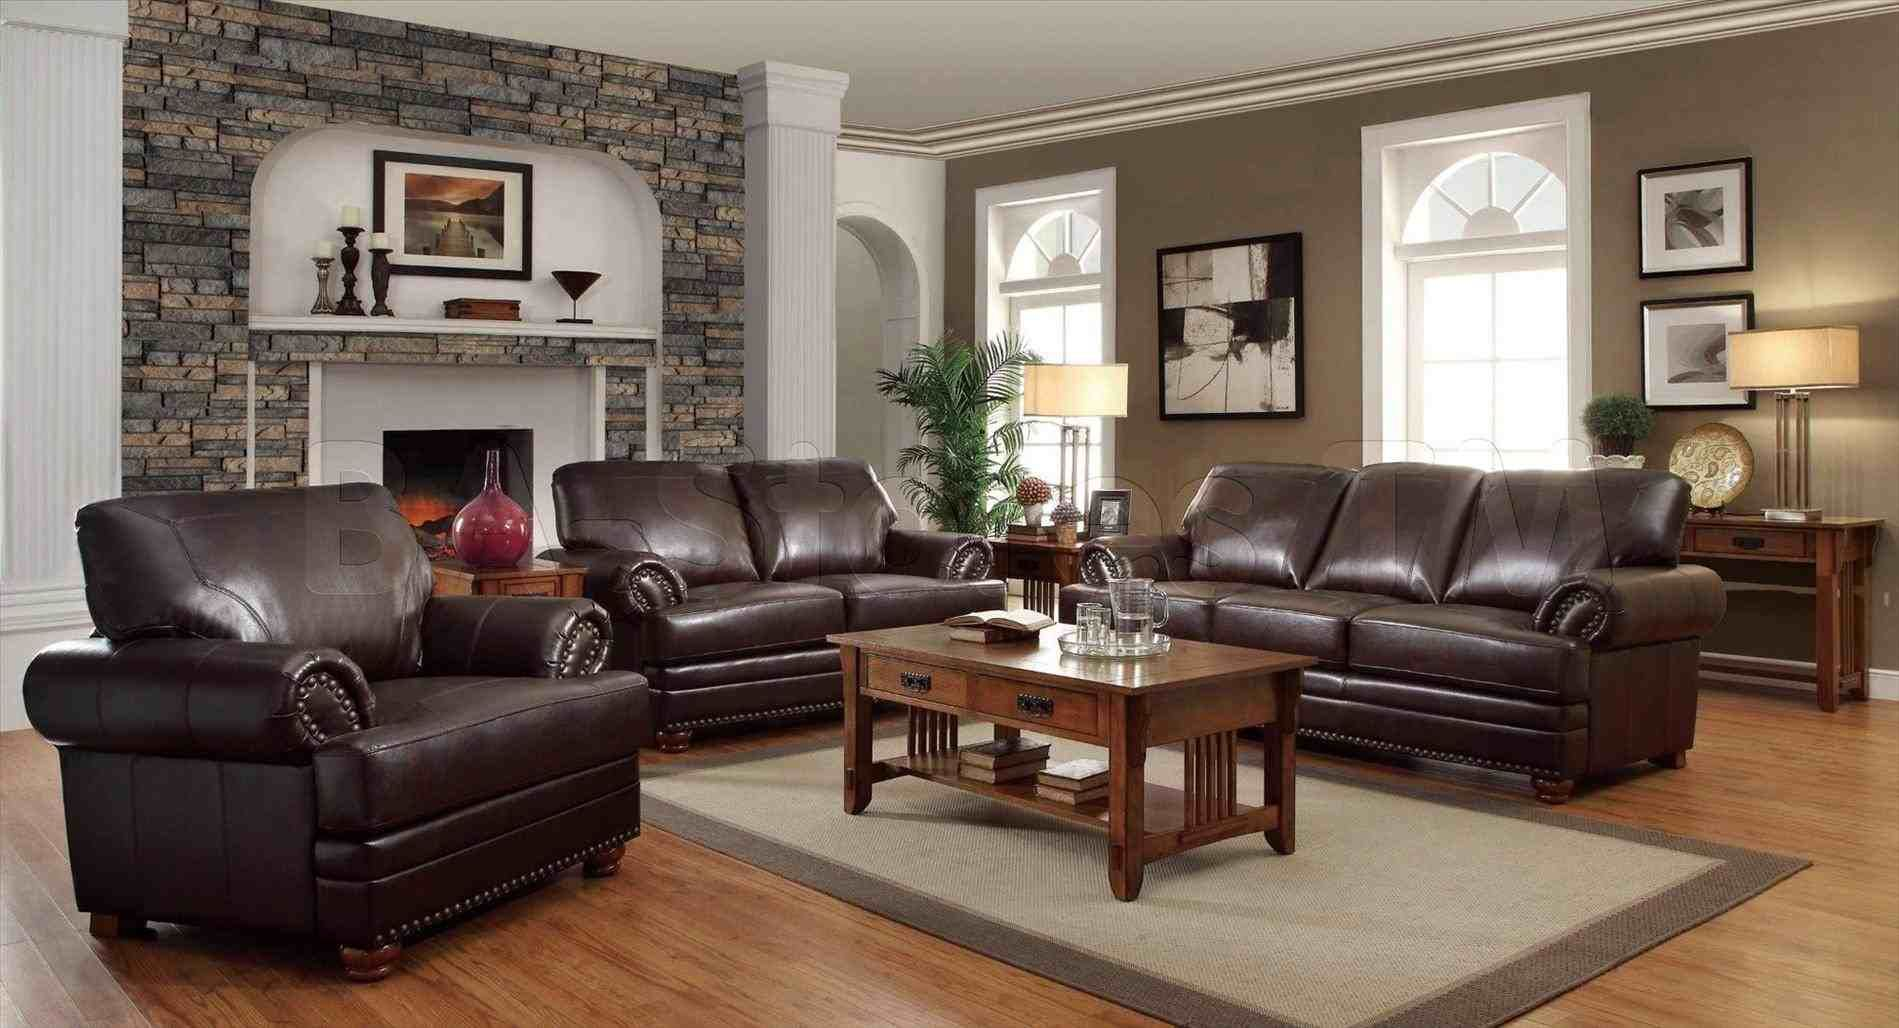 luxury sofa and loveseat covers sets inspiration-Modern sofa and Loveseat Covers Sets Construction